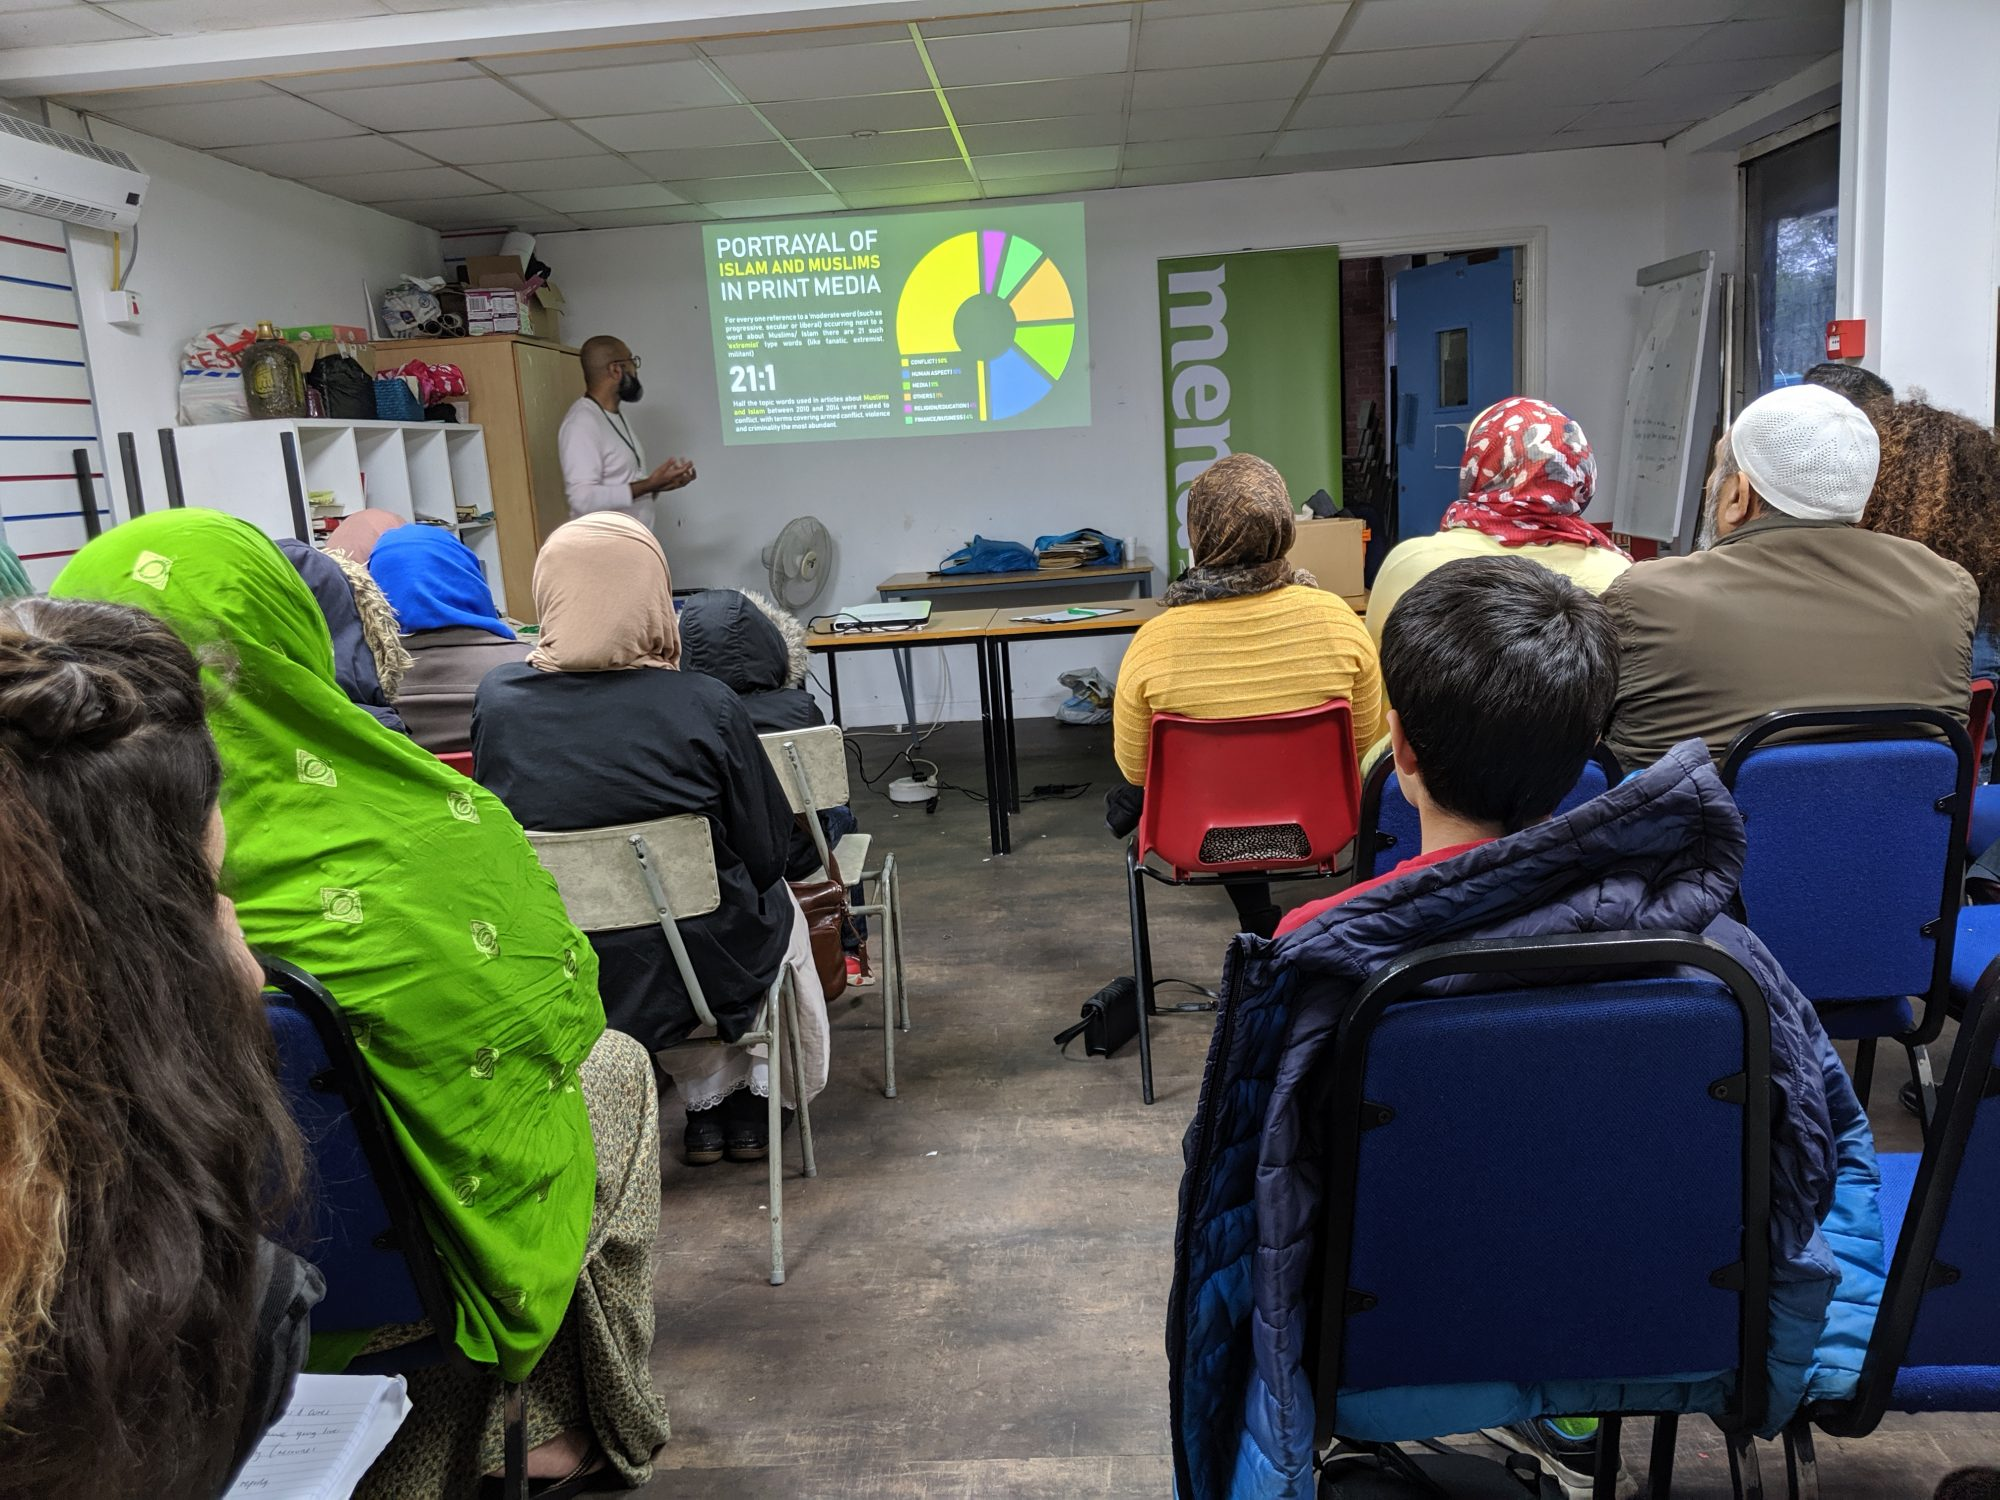 South Manchester Muslim Community Association- Causes and Cures of Islamophobia Presentation